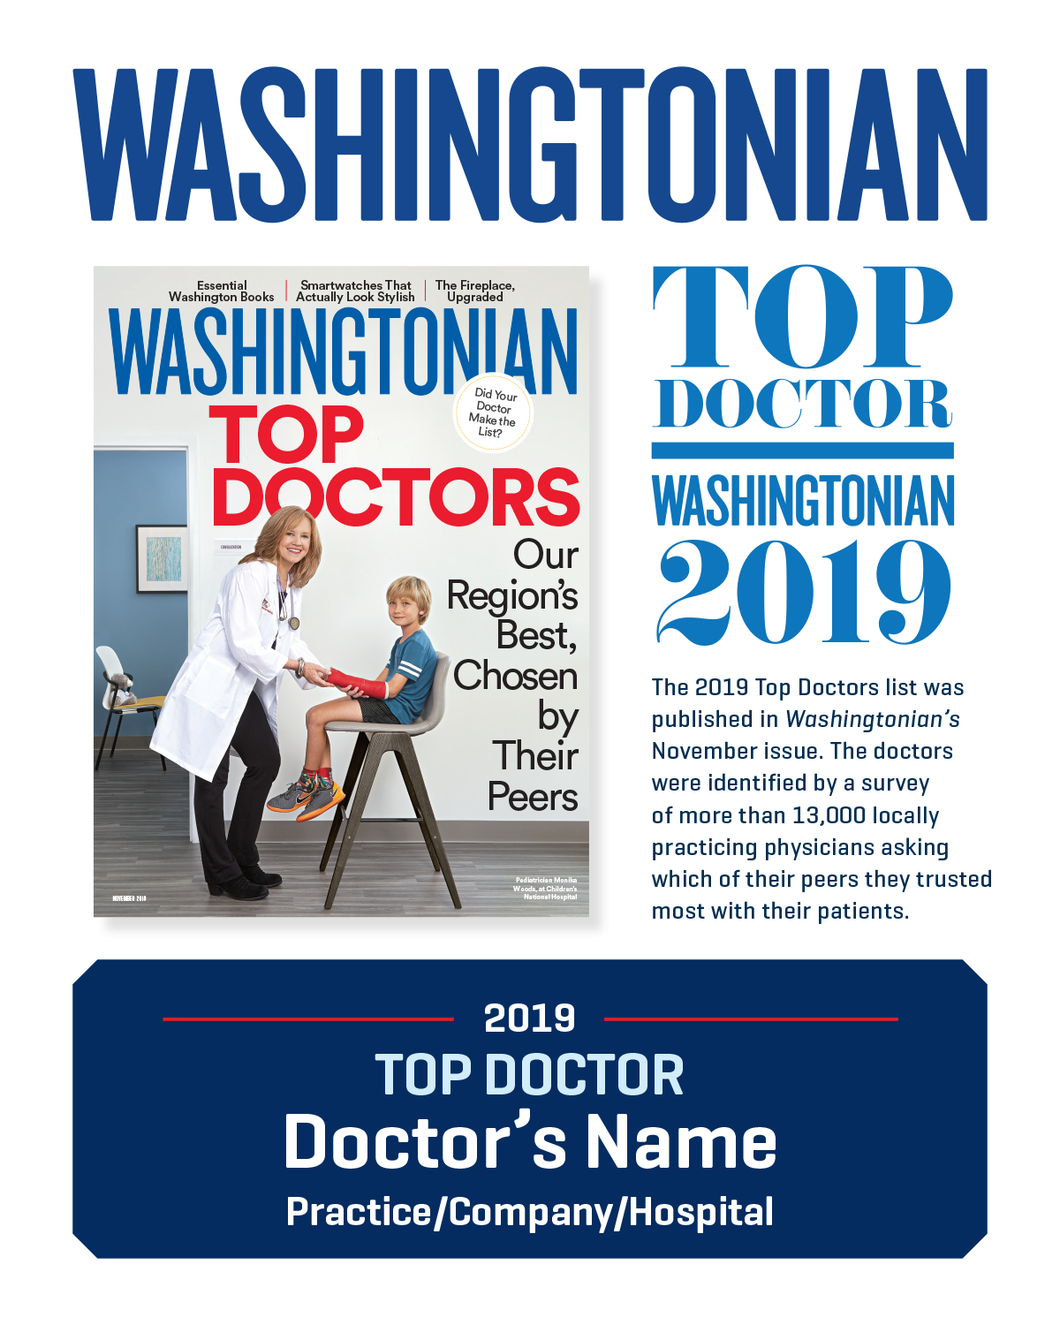 Washingtonian Top Doctor Plaque (30% Discount)